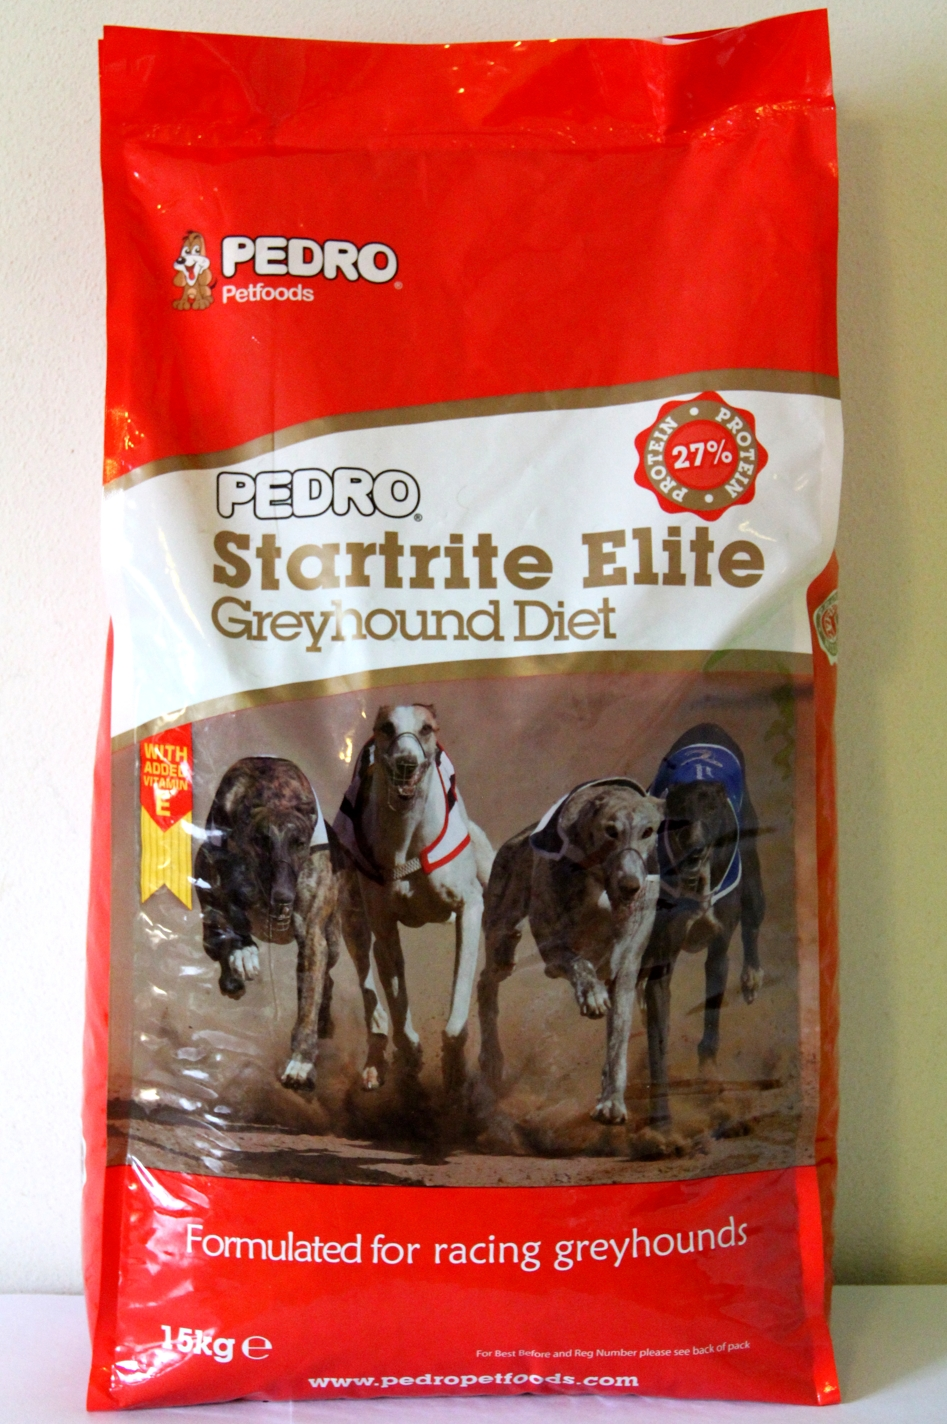 PEDRO STARTRITE ELITE GREYHOUND - granule